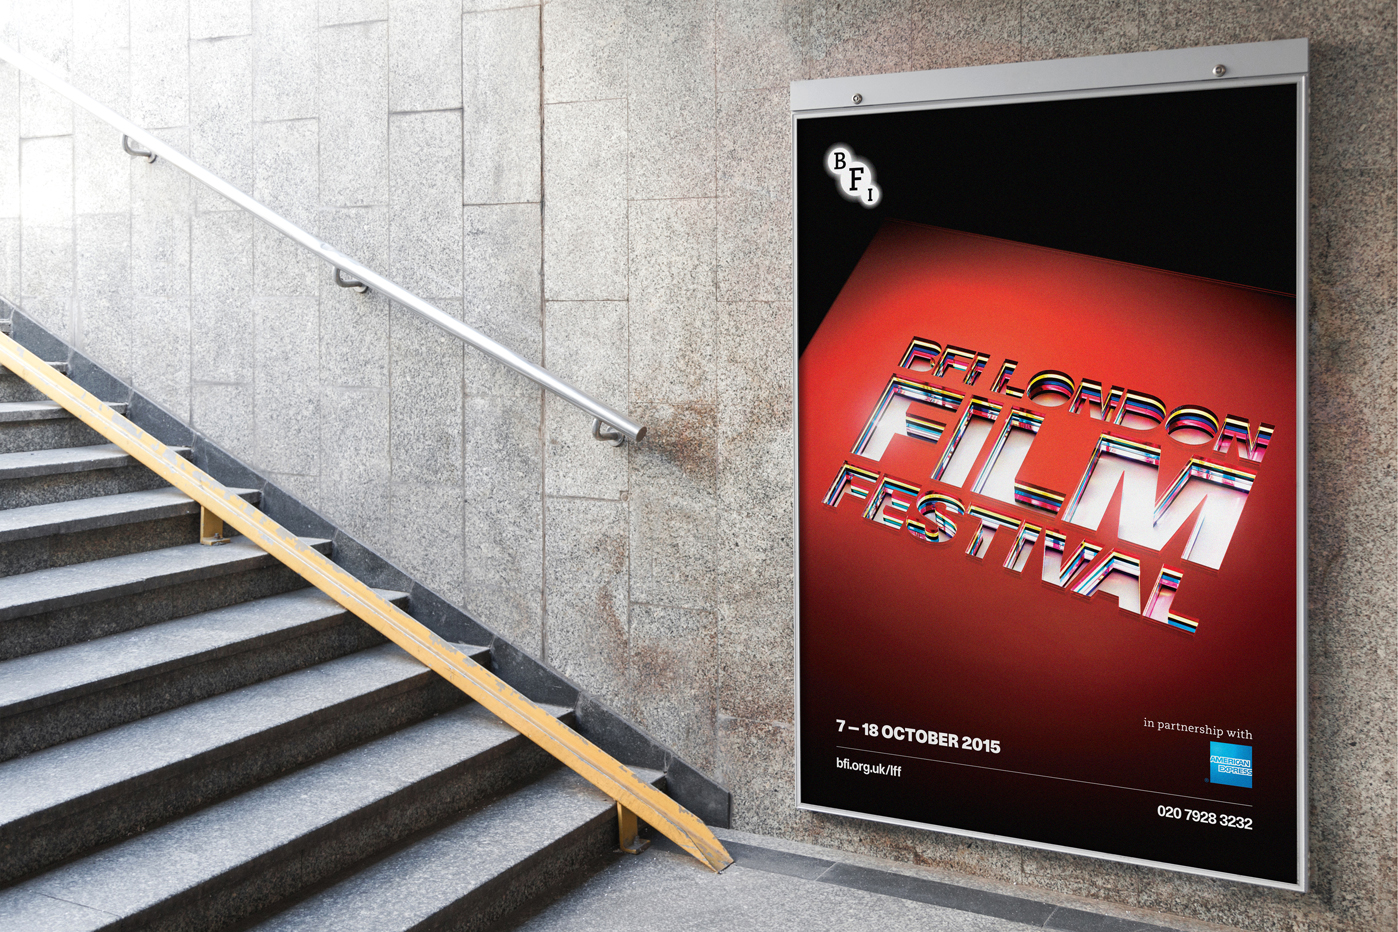 BFI_london_film_festival_poster_web_001